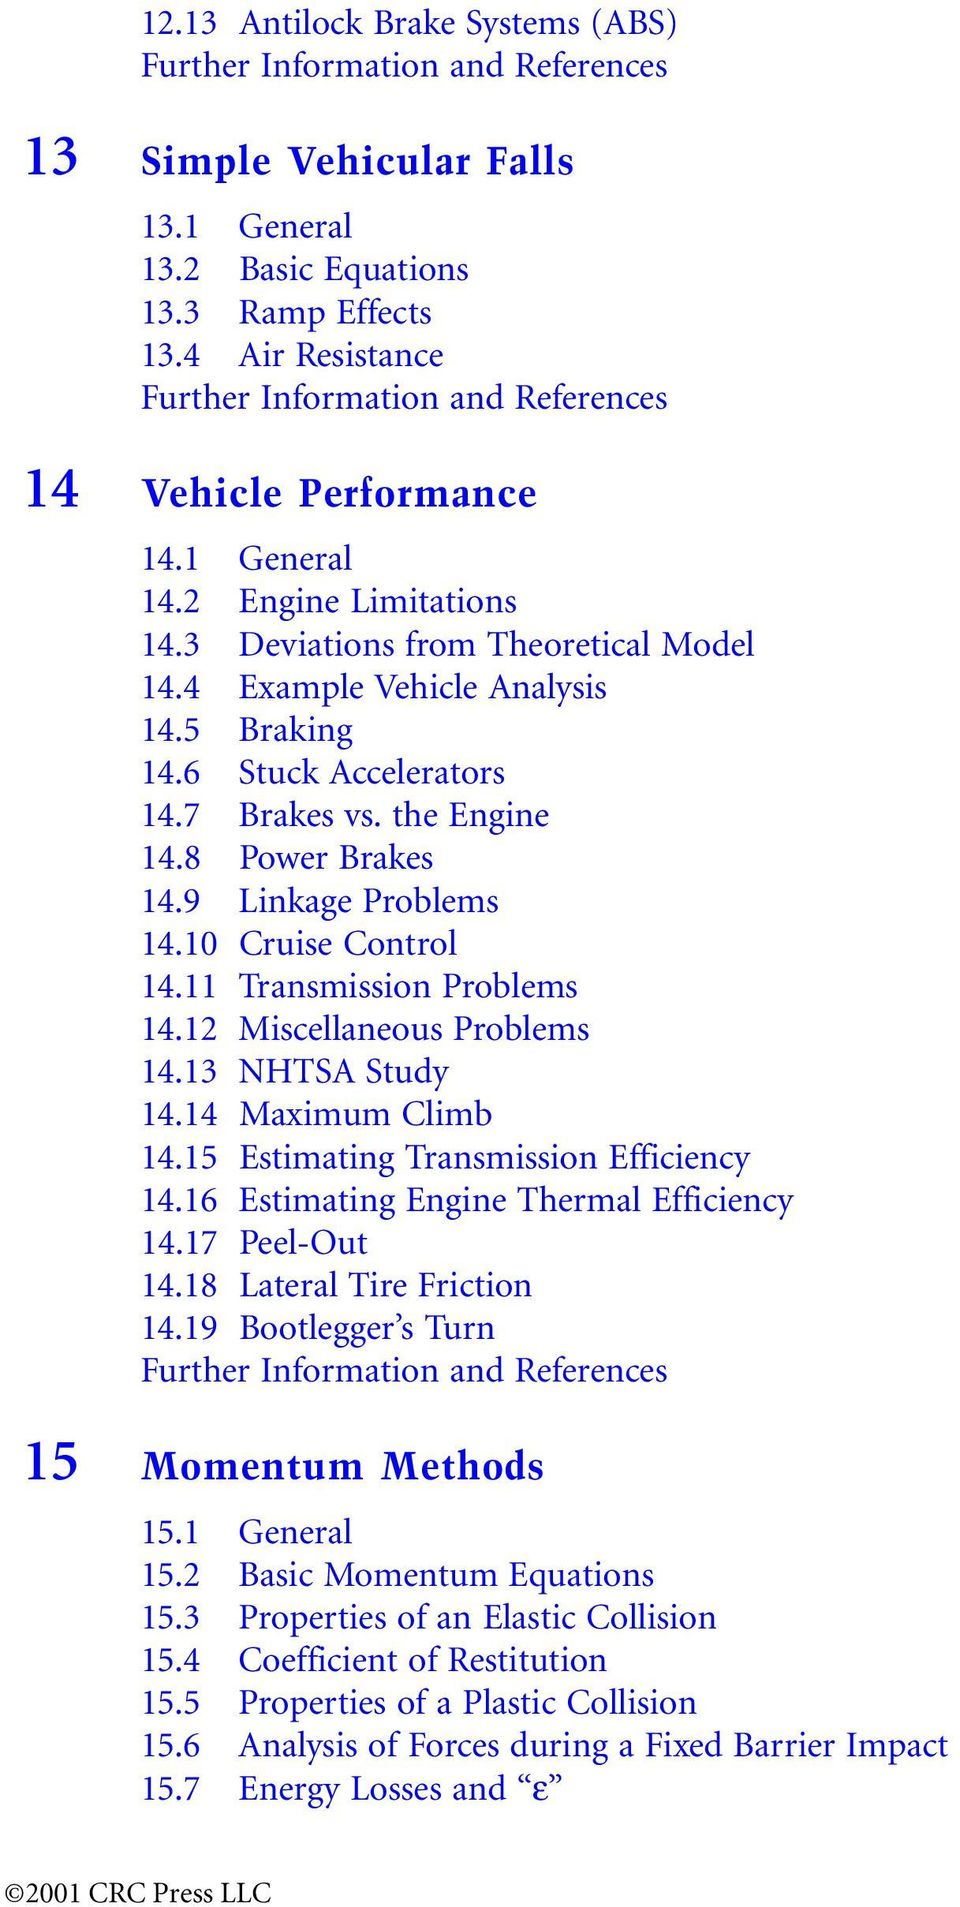 6 Stuck Accelerators 14.7 Brakes vs. the Engine 14.8 Power Brakes 14.9 Linkage Problems 14.10 Cruise Control 14.11 Transmission Problems 14.12 Miscellaneous Problems 14.13 NHTSA Study 14.